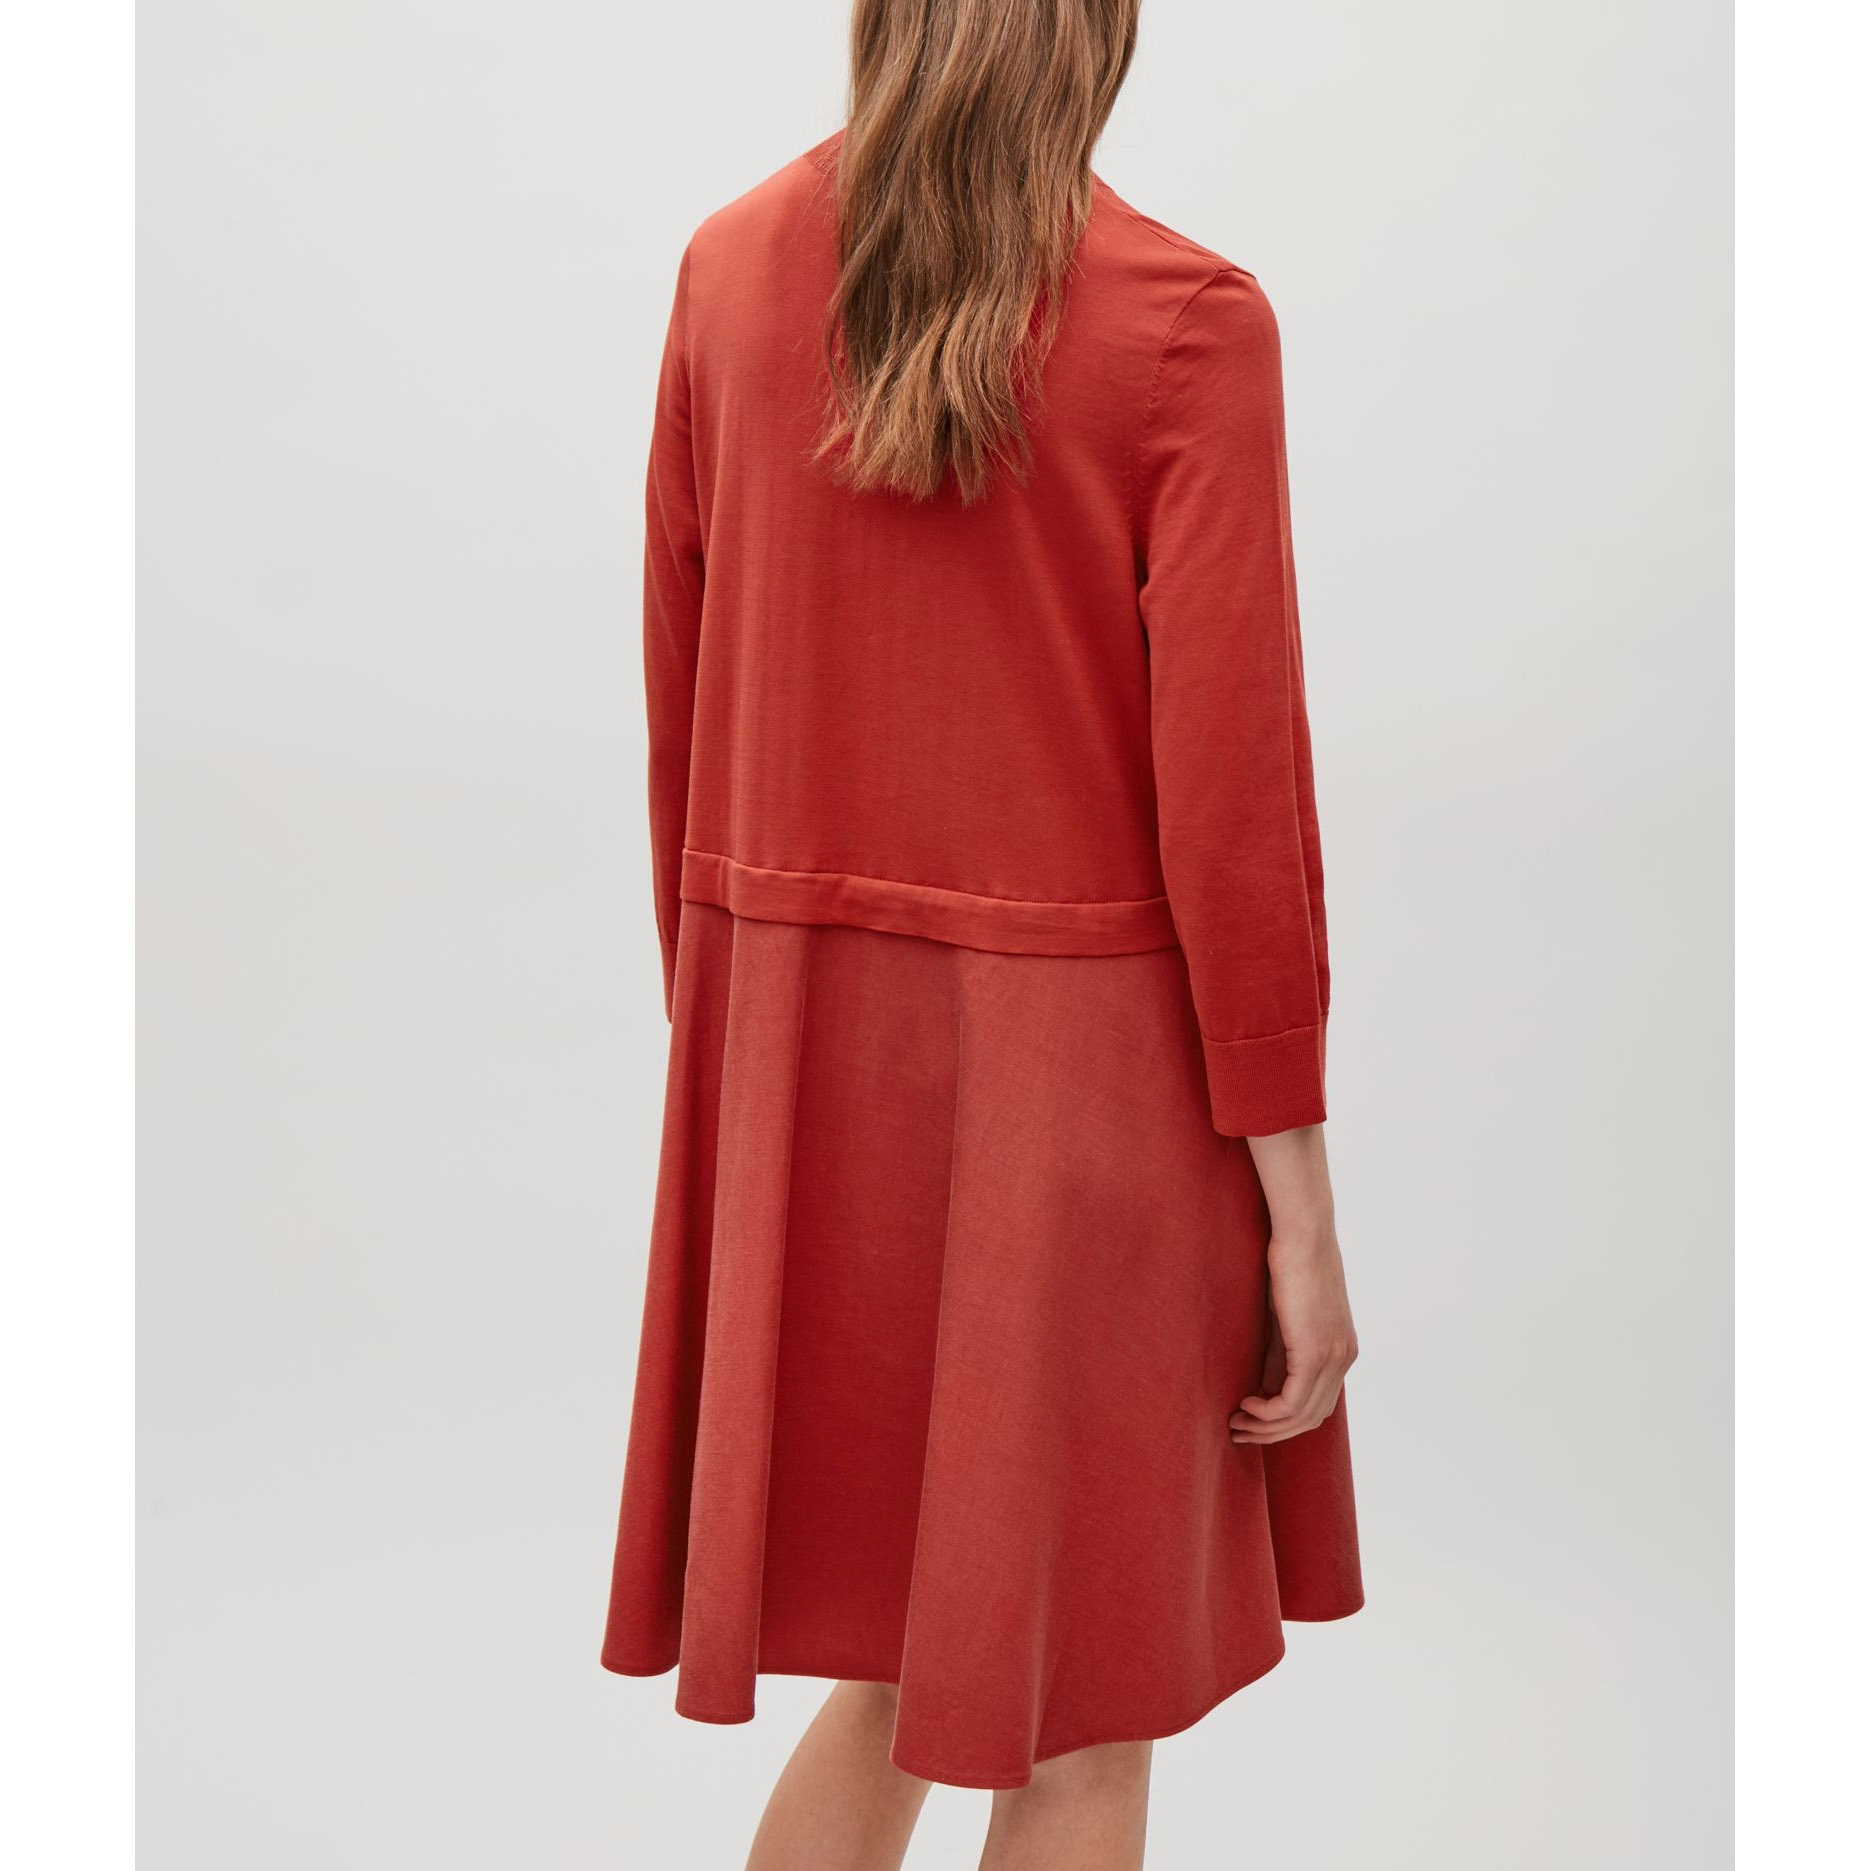 COS☆KNITTED DRESS WITH WOVEN SKIRT / red